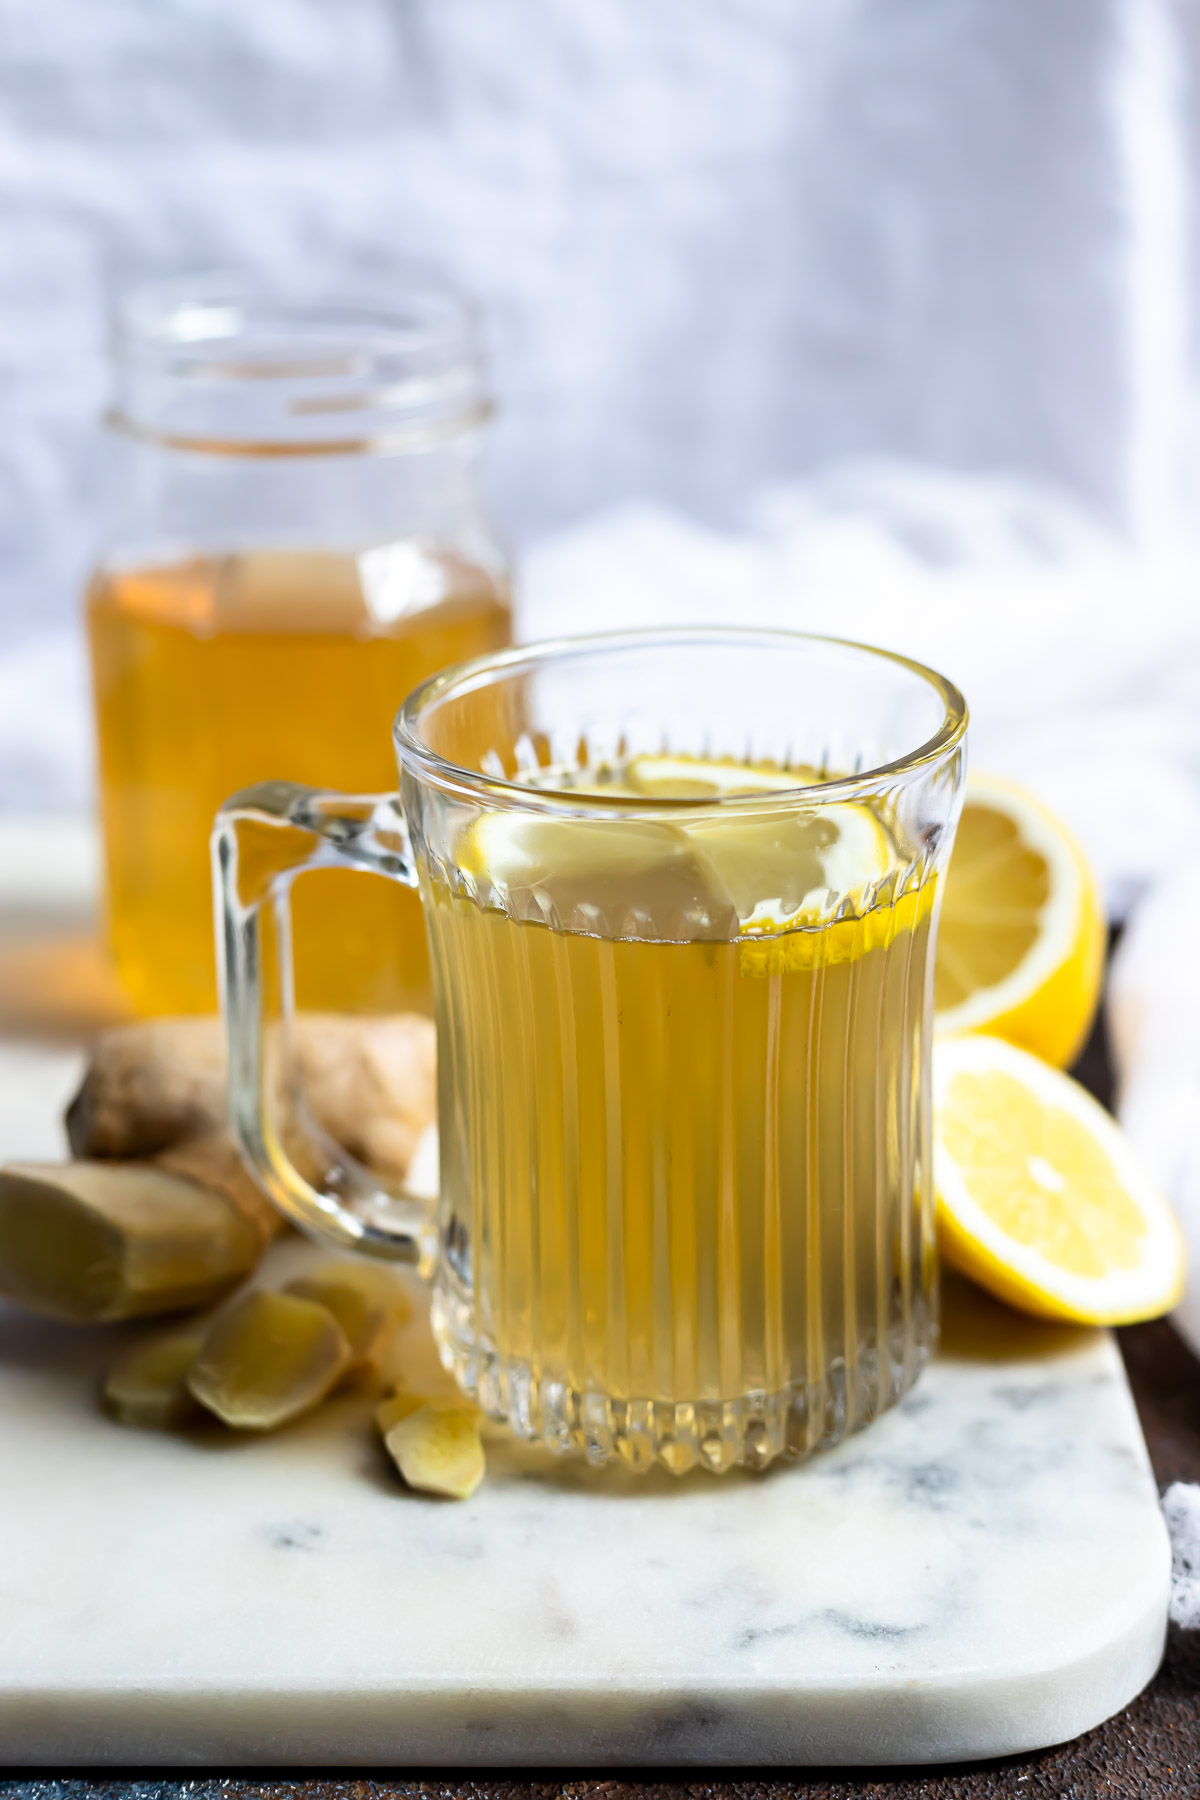 ginger tea in clear mug with lemon slices showing the benefits of ginger